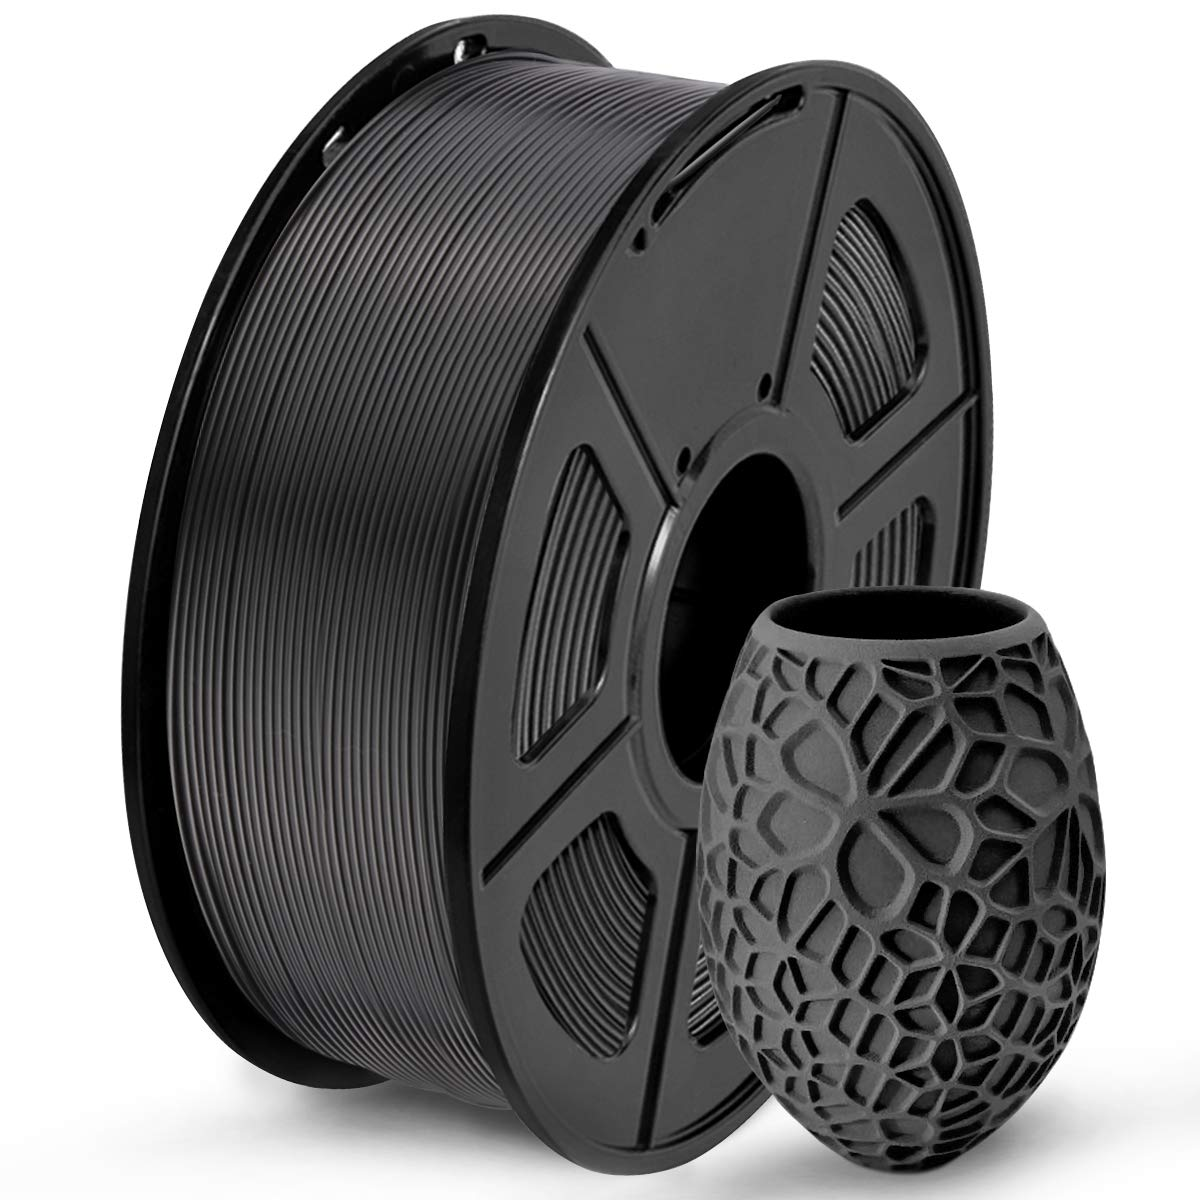 PLA 3D Printer Filament, SUNLU PLA Filament 1.75mm, Dimensional Accuracy +/- 0.02 mm, 1 kg Spool, 1.75mm, PLA Black